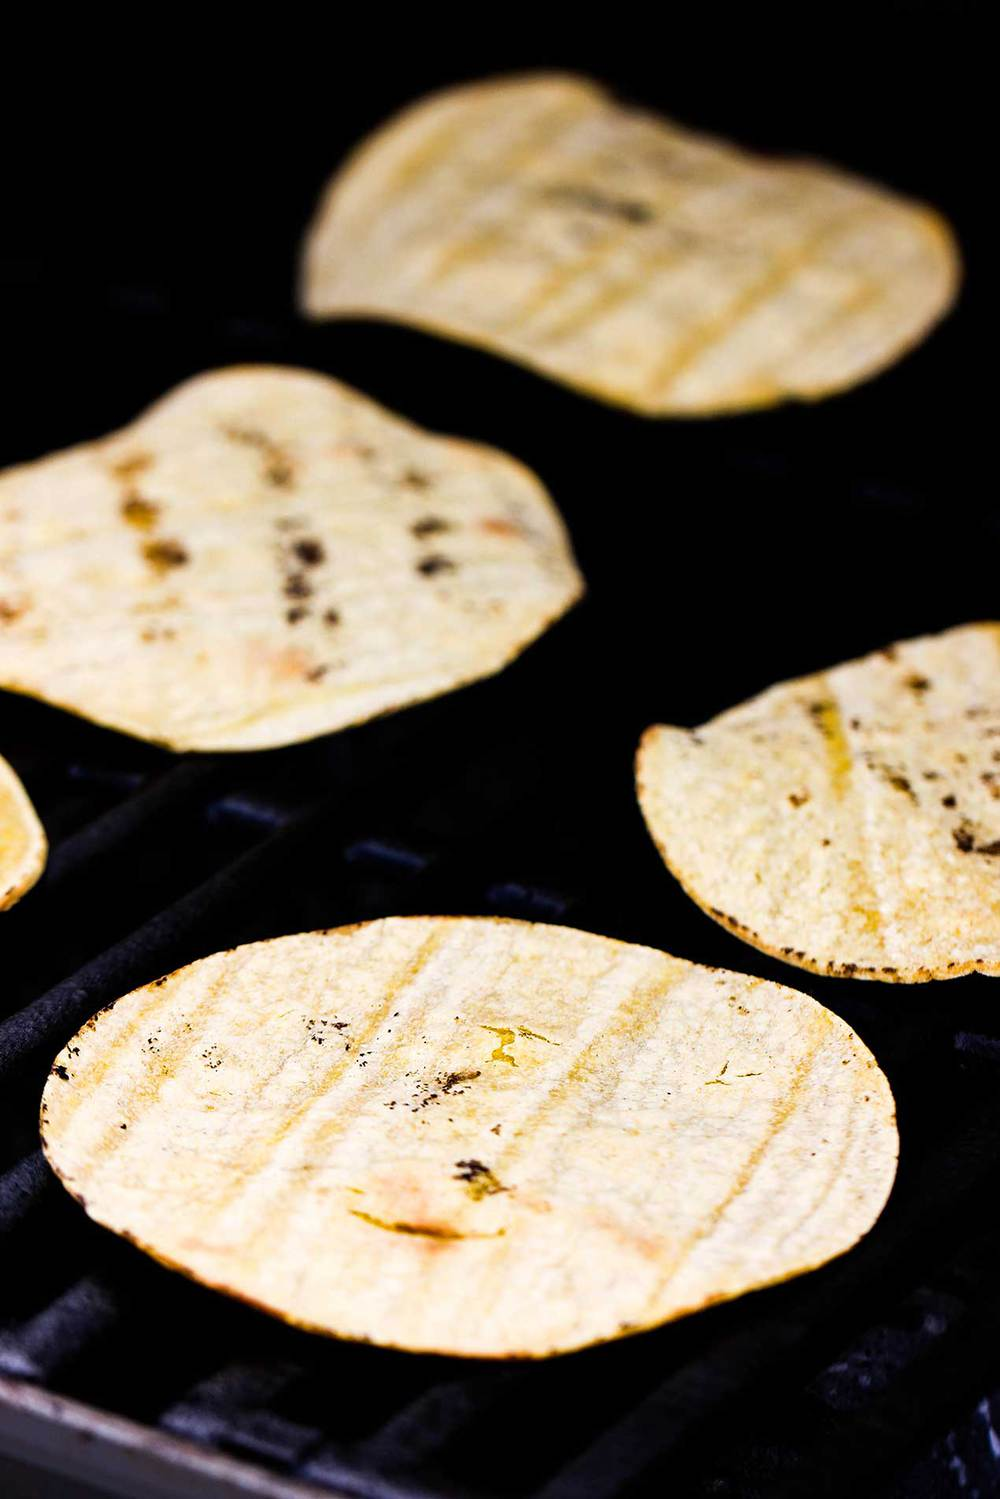 Corn tortillas heating up on a gas grill.